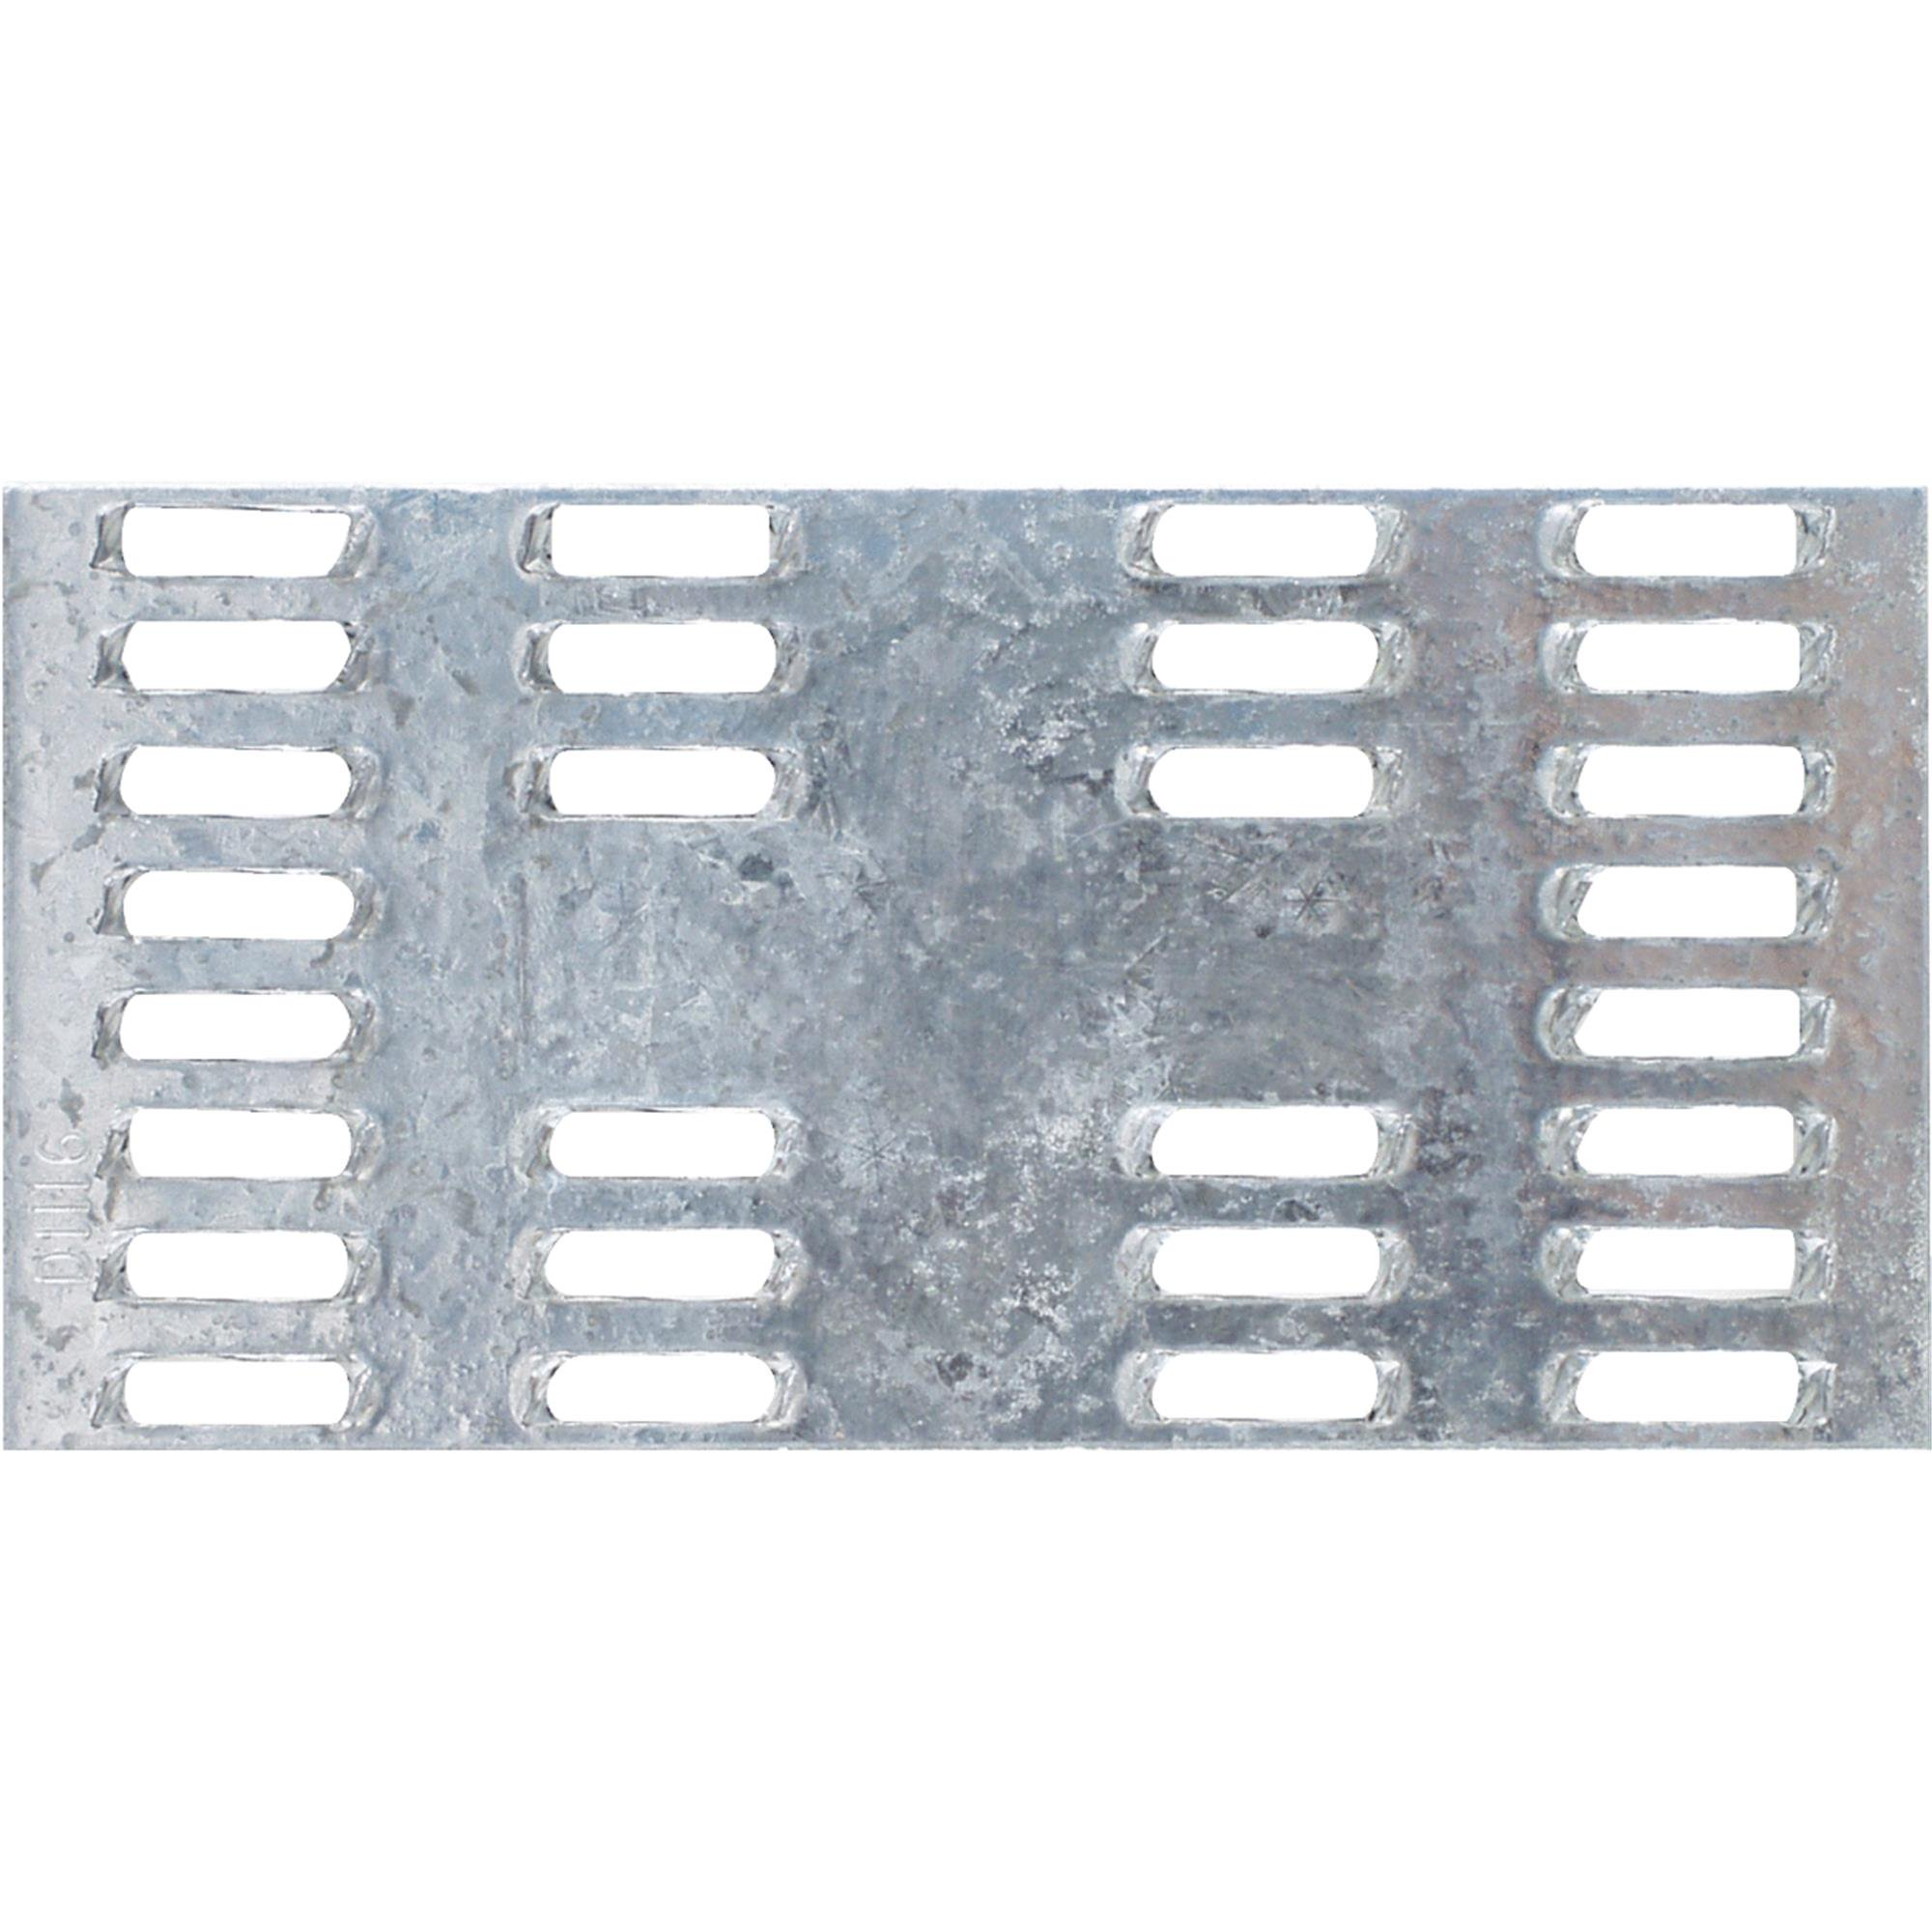 Simpson Strong-Tie Mending Plate